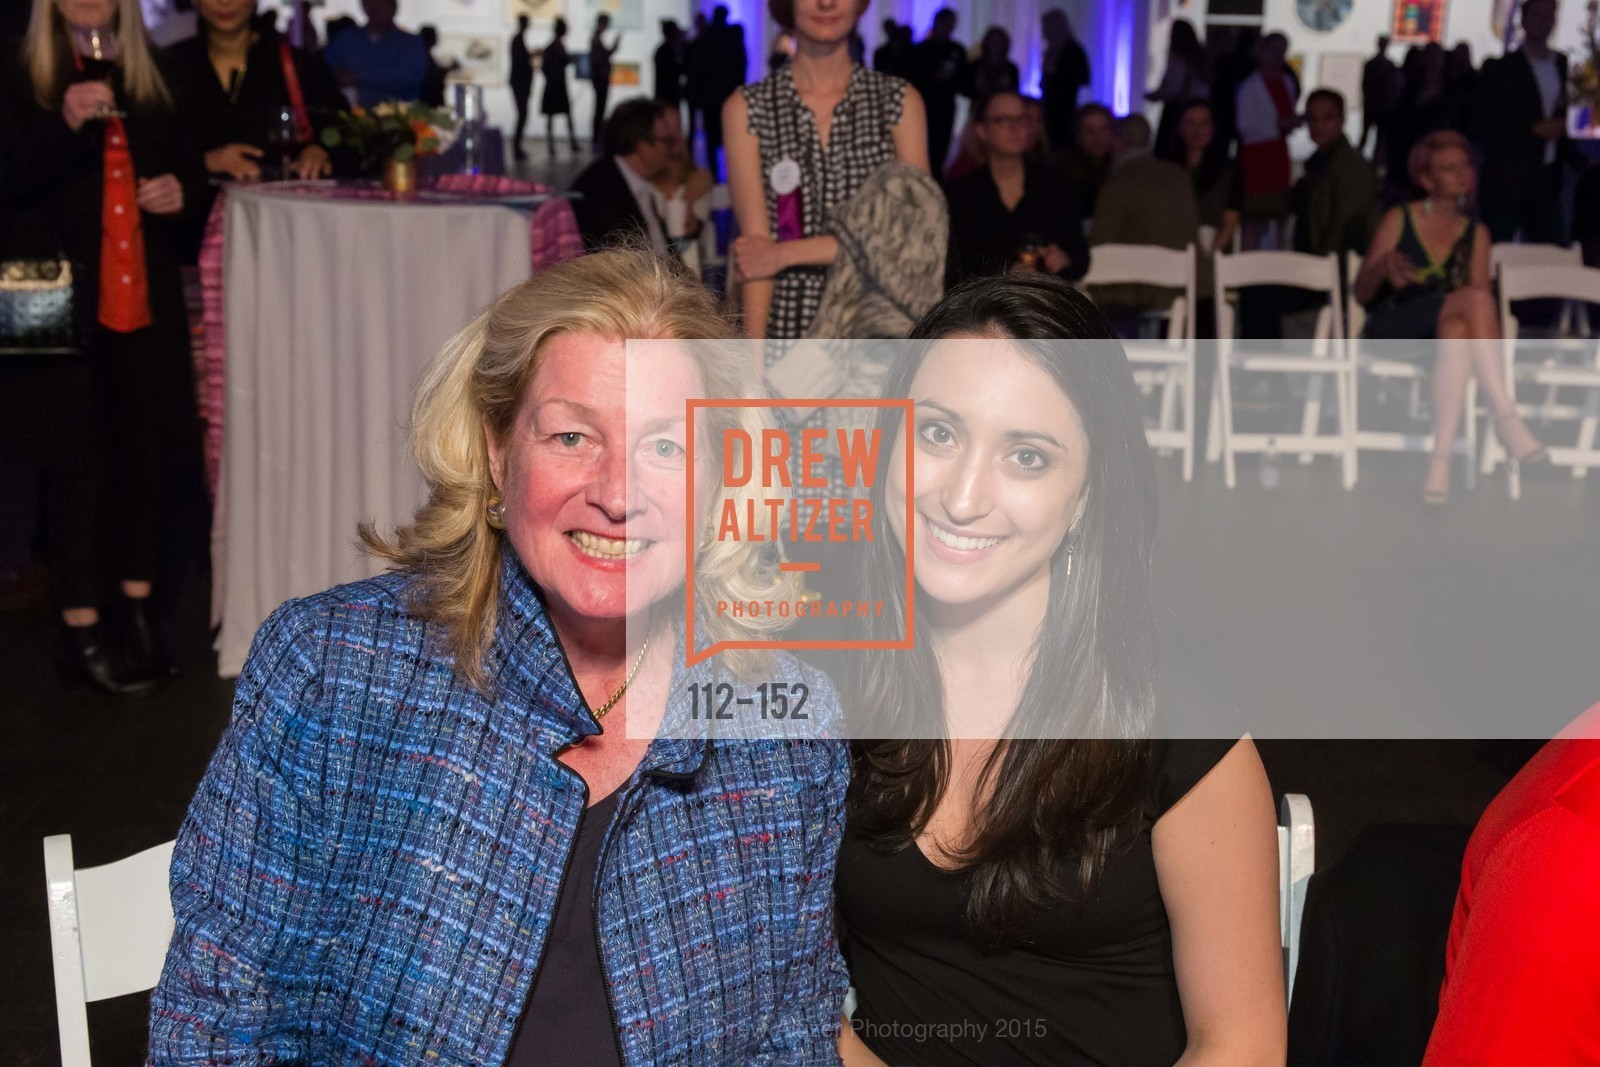 Laura King Pfaff, Michaela Khalfayan, Headlands Center for the Arts Benefit Auction, Fort Mason Festival, Pavilon, June 2nd, 2015,Drew Altizer, Drew Altizer Photography, full-service agency, private events, San Francisco photographer, photographer california